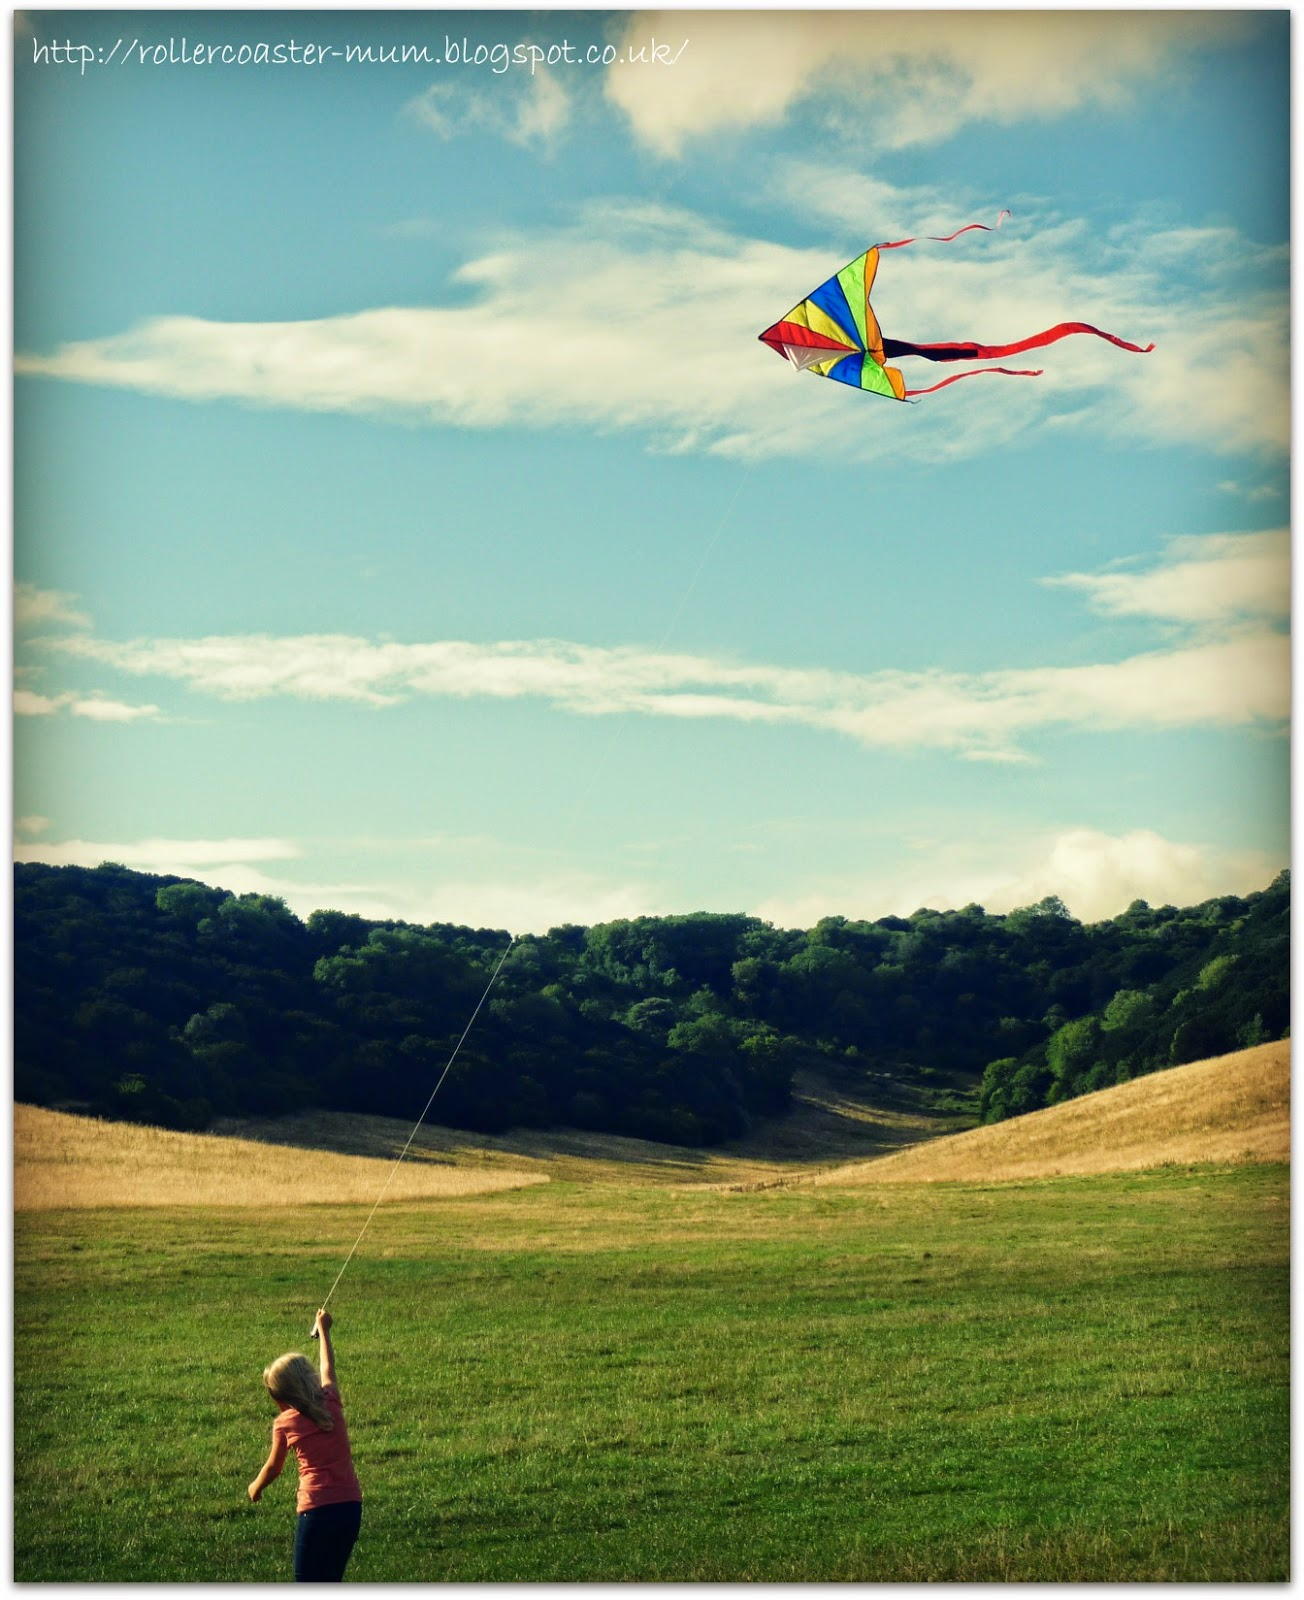 Traditional toys, flying a kite